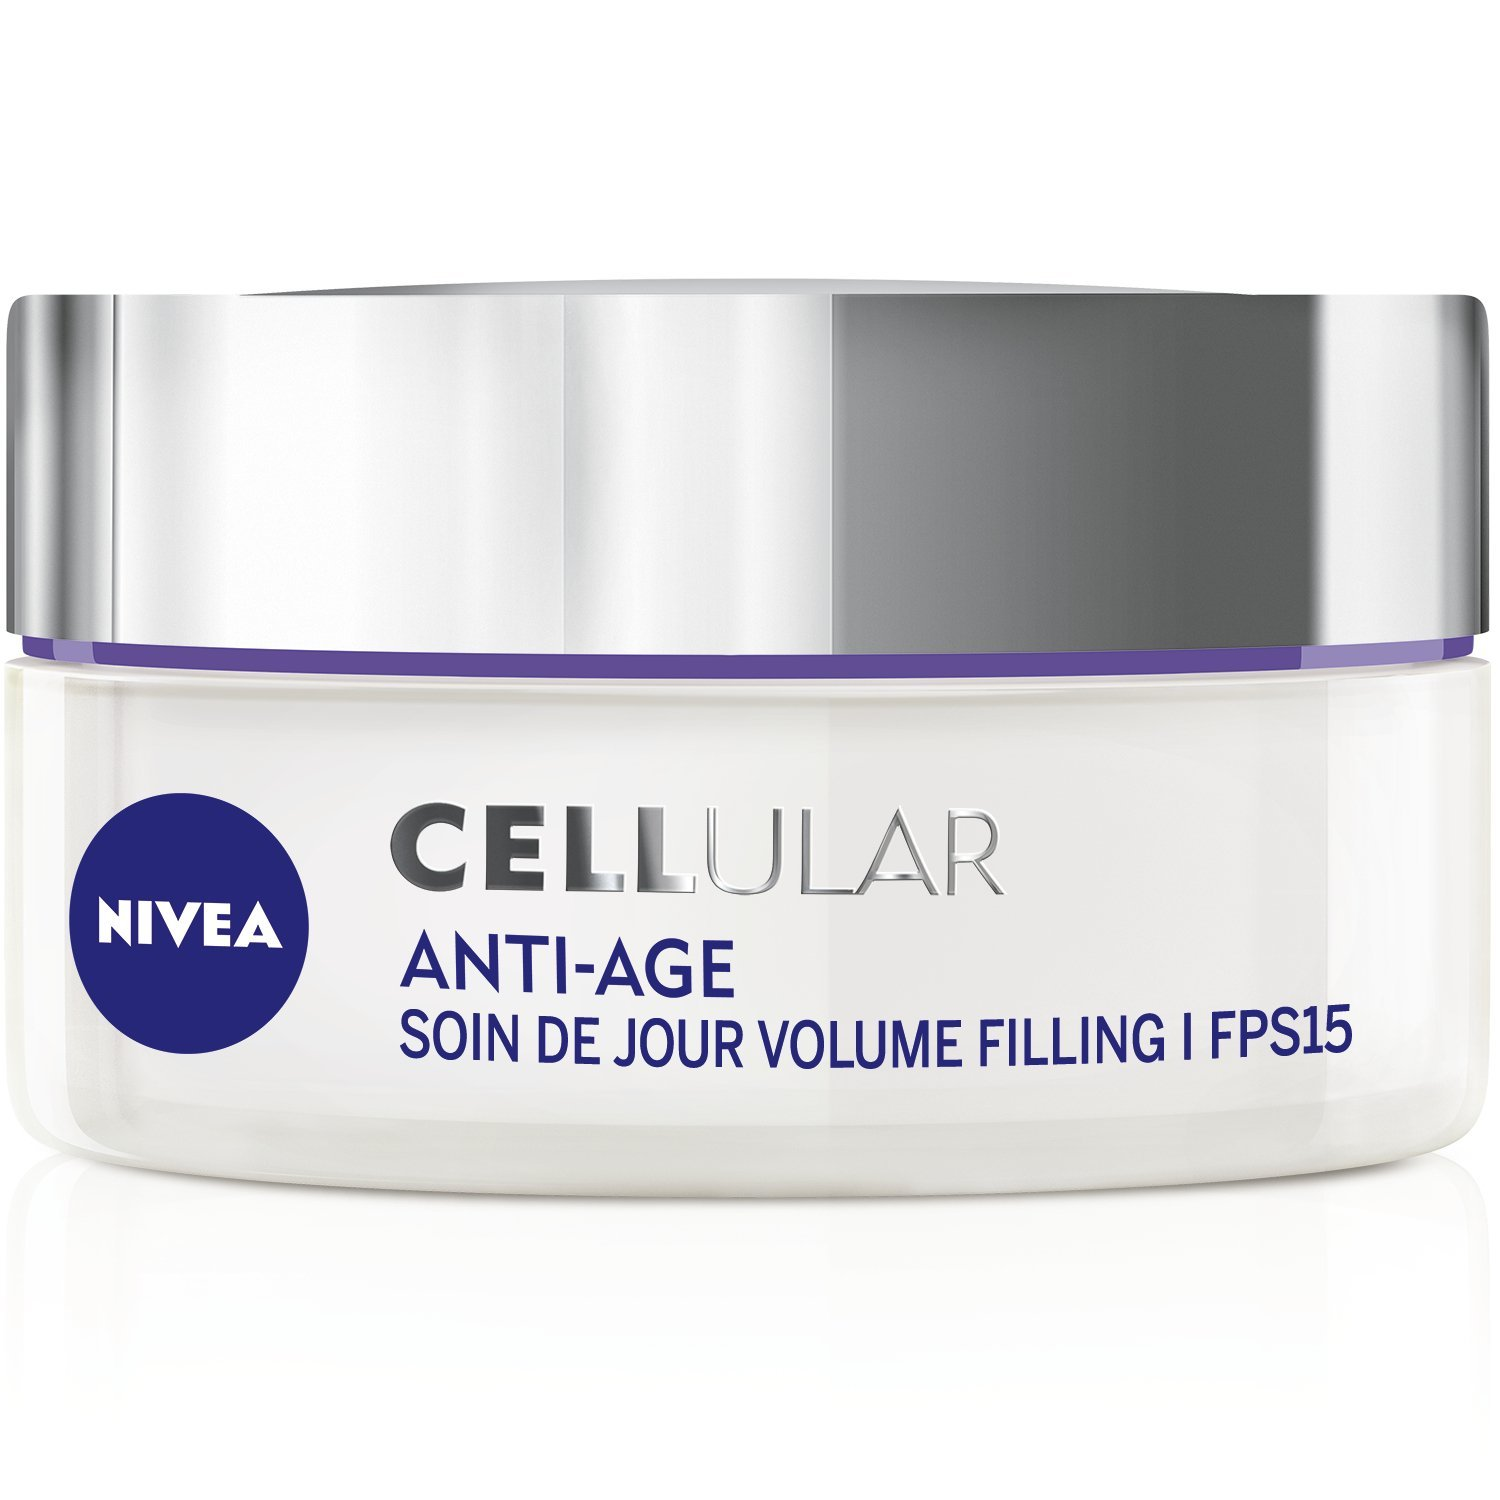 NIVEA CELLular Anti-Age SPF 15